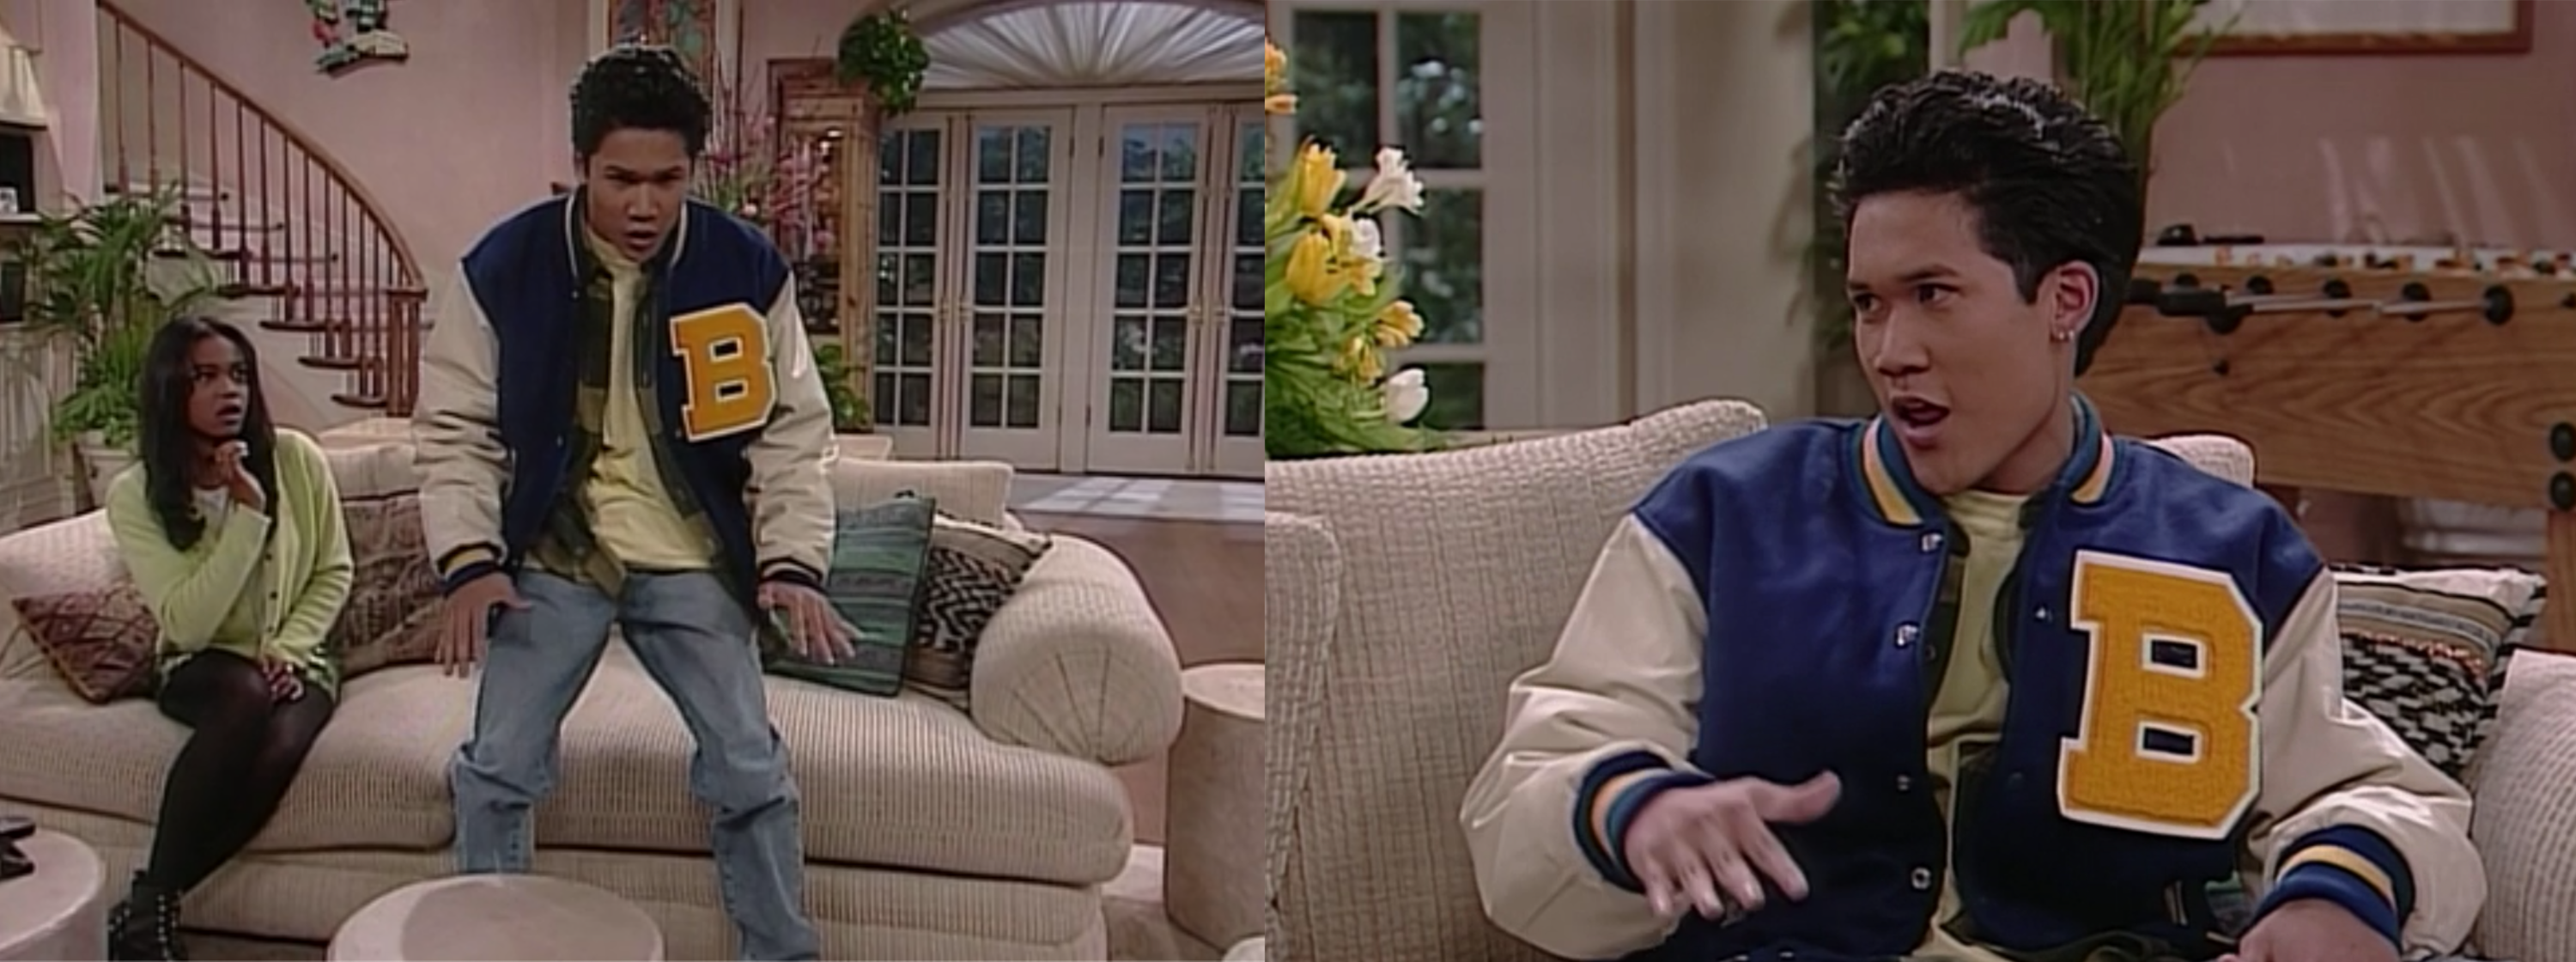 two photos of Dante Basco as Kevin in The Fresh Prince of Bel Air on a beige couch